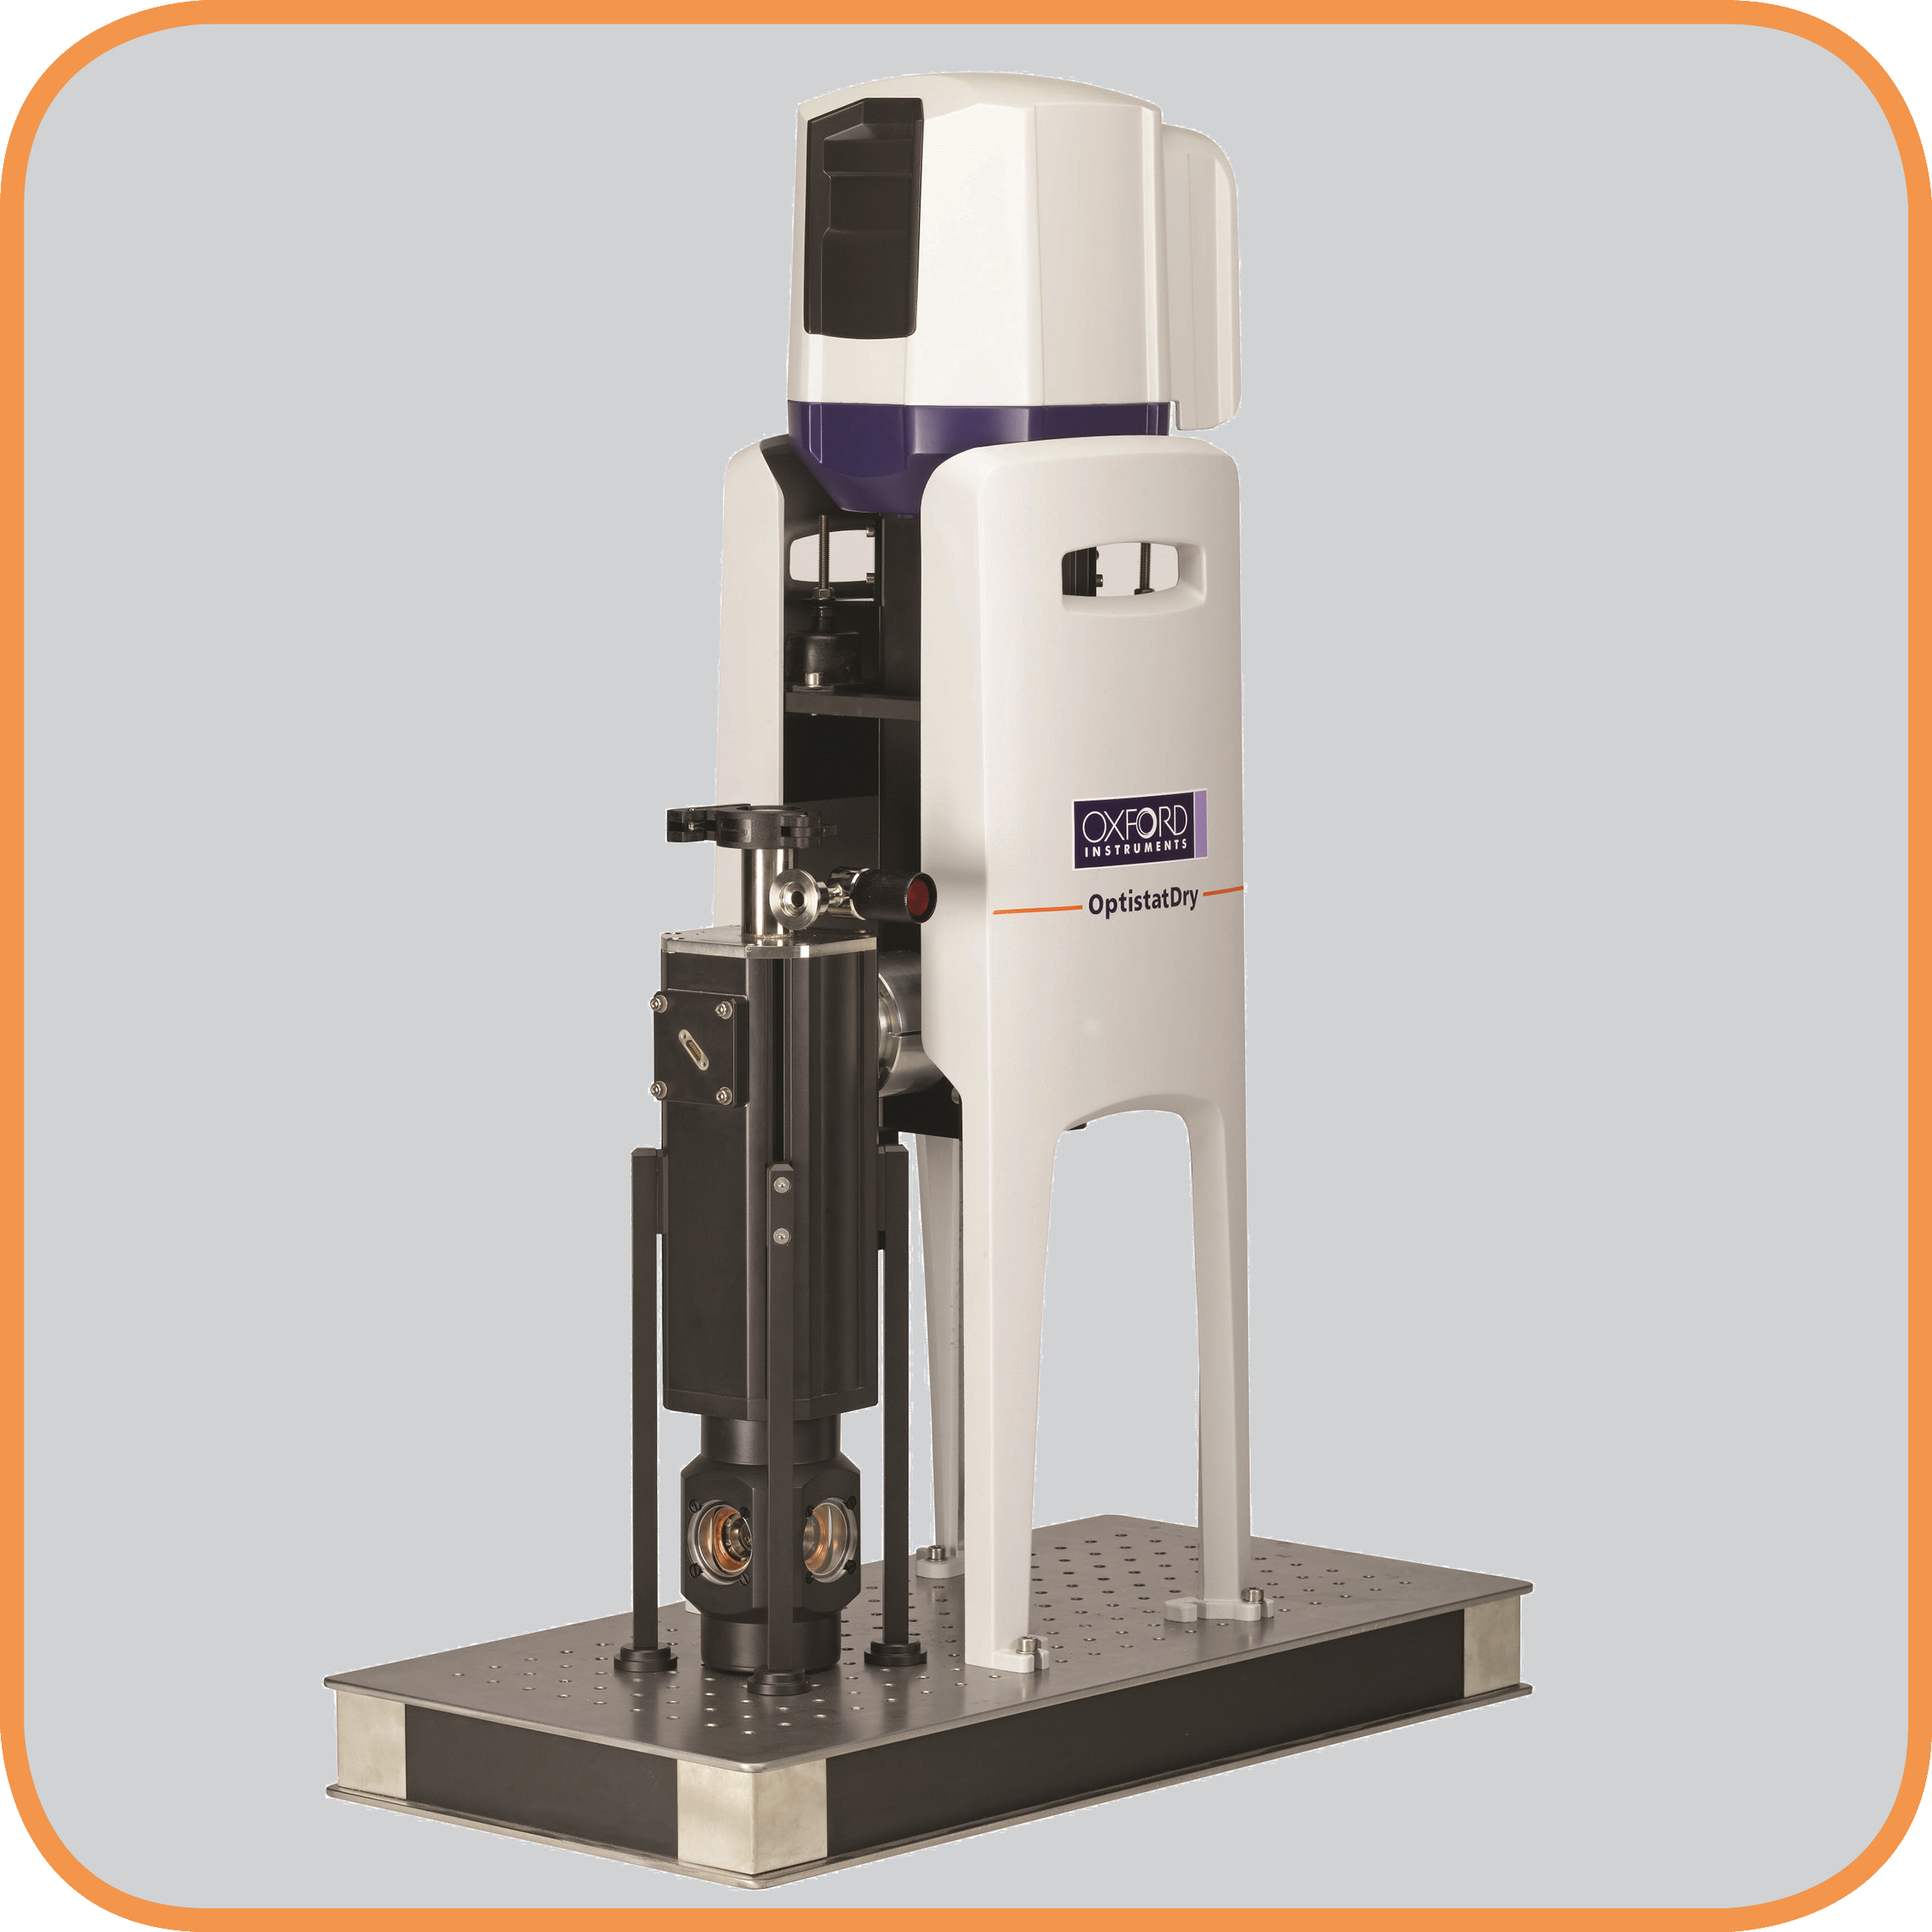 OptistatDry TLEX top-loading Cryofree cryostat